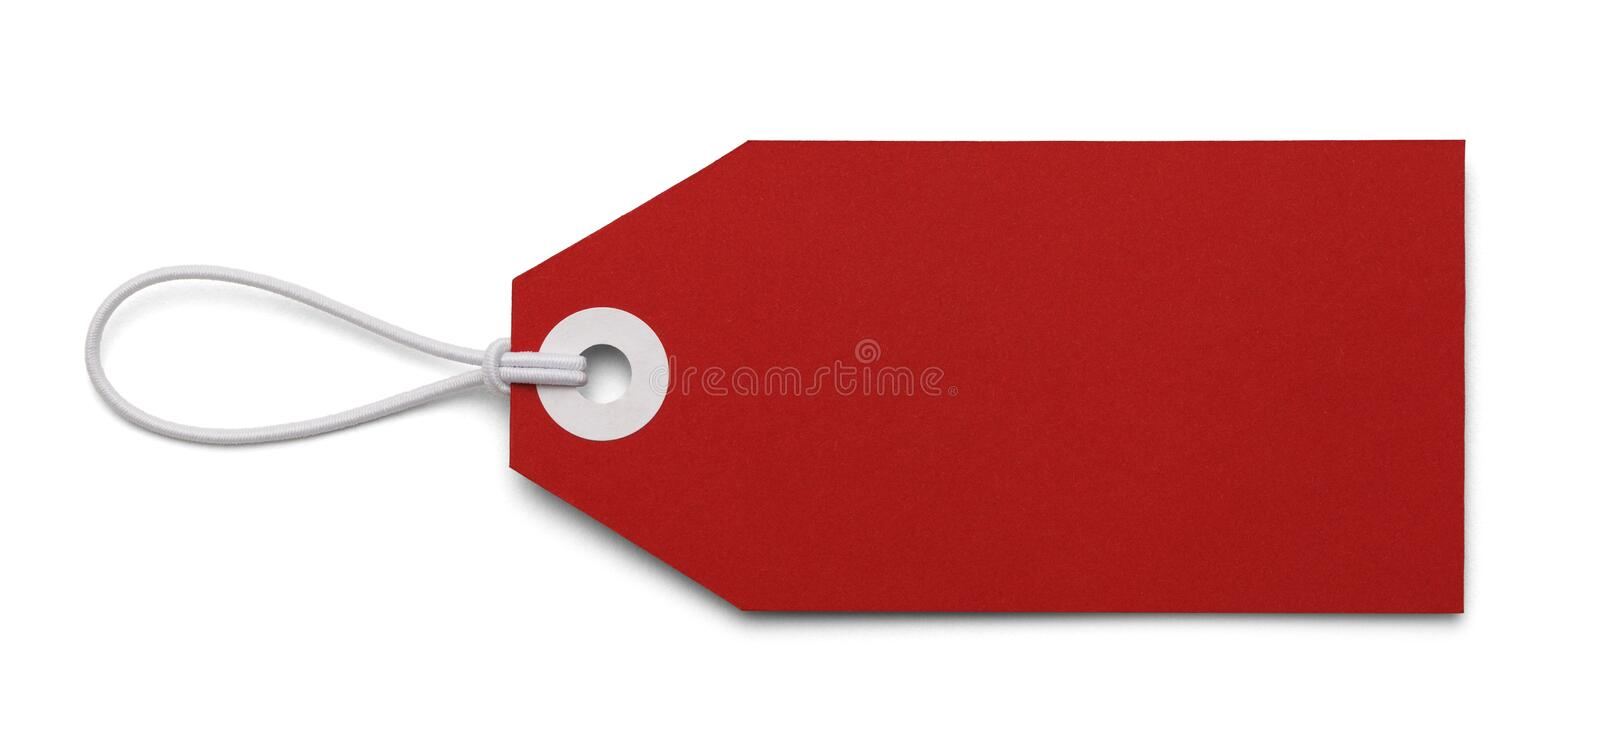 Blank Red Tag. Large Price Tag with Copy Space Isolated on White Background royalty free stock photo